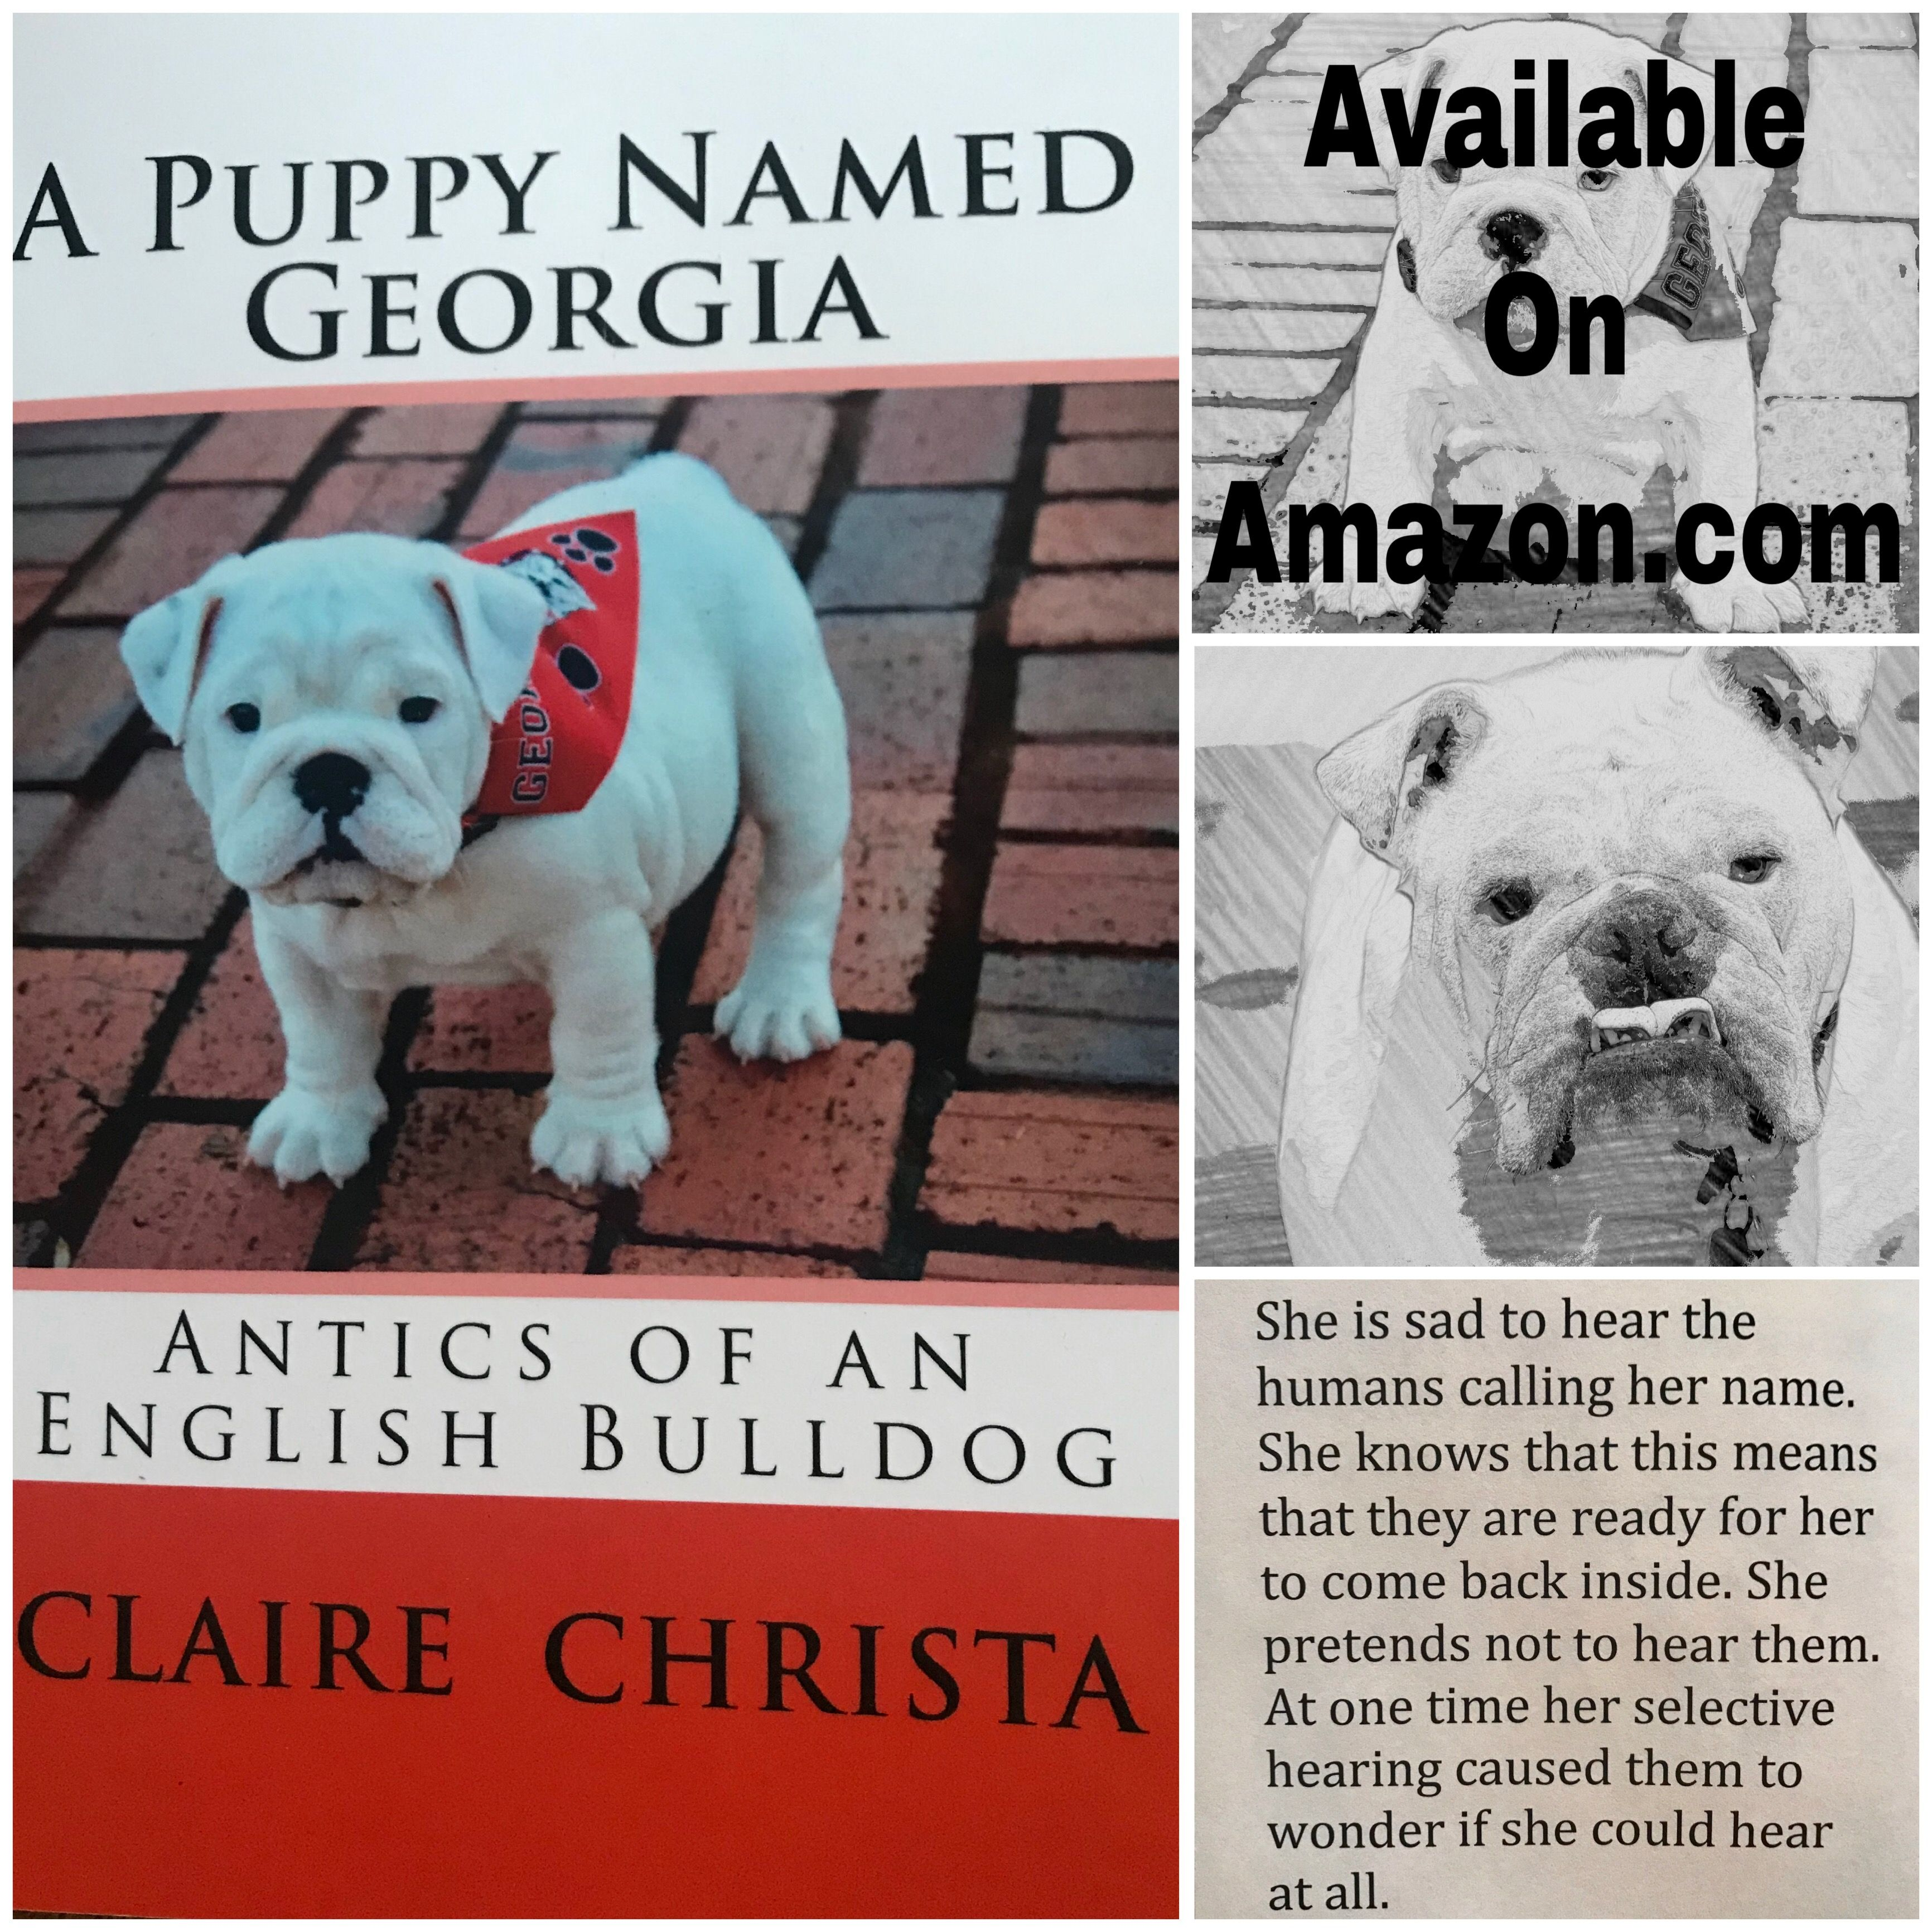 Children S Book For Sale About An English Bulldog Named Georgia